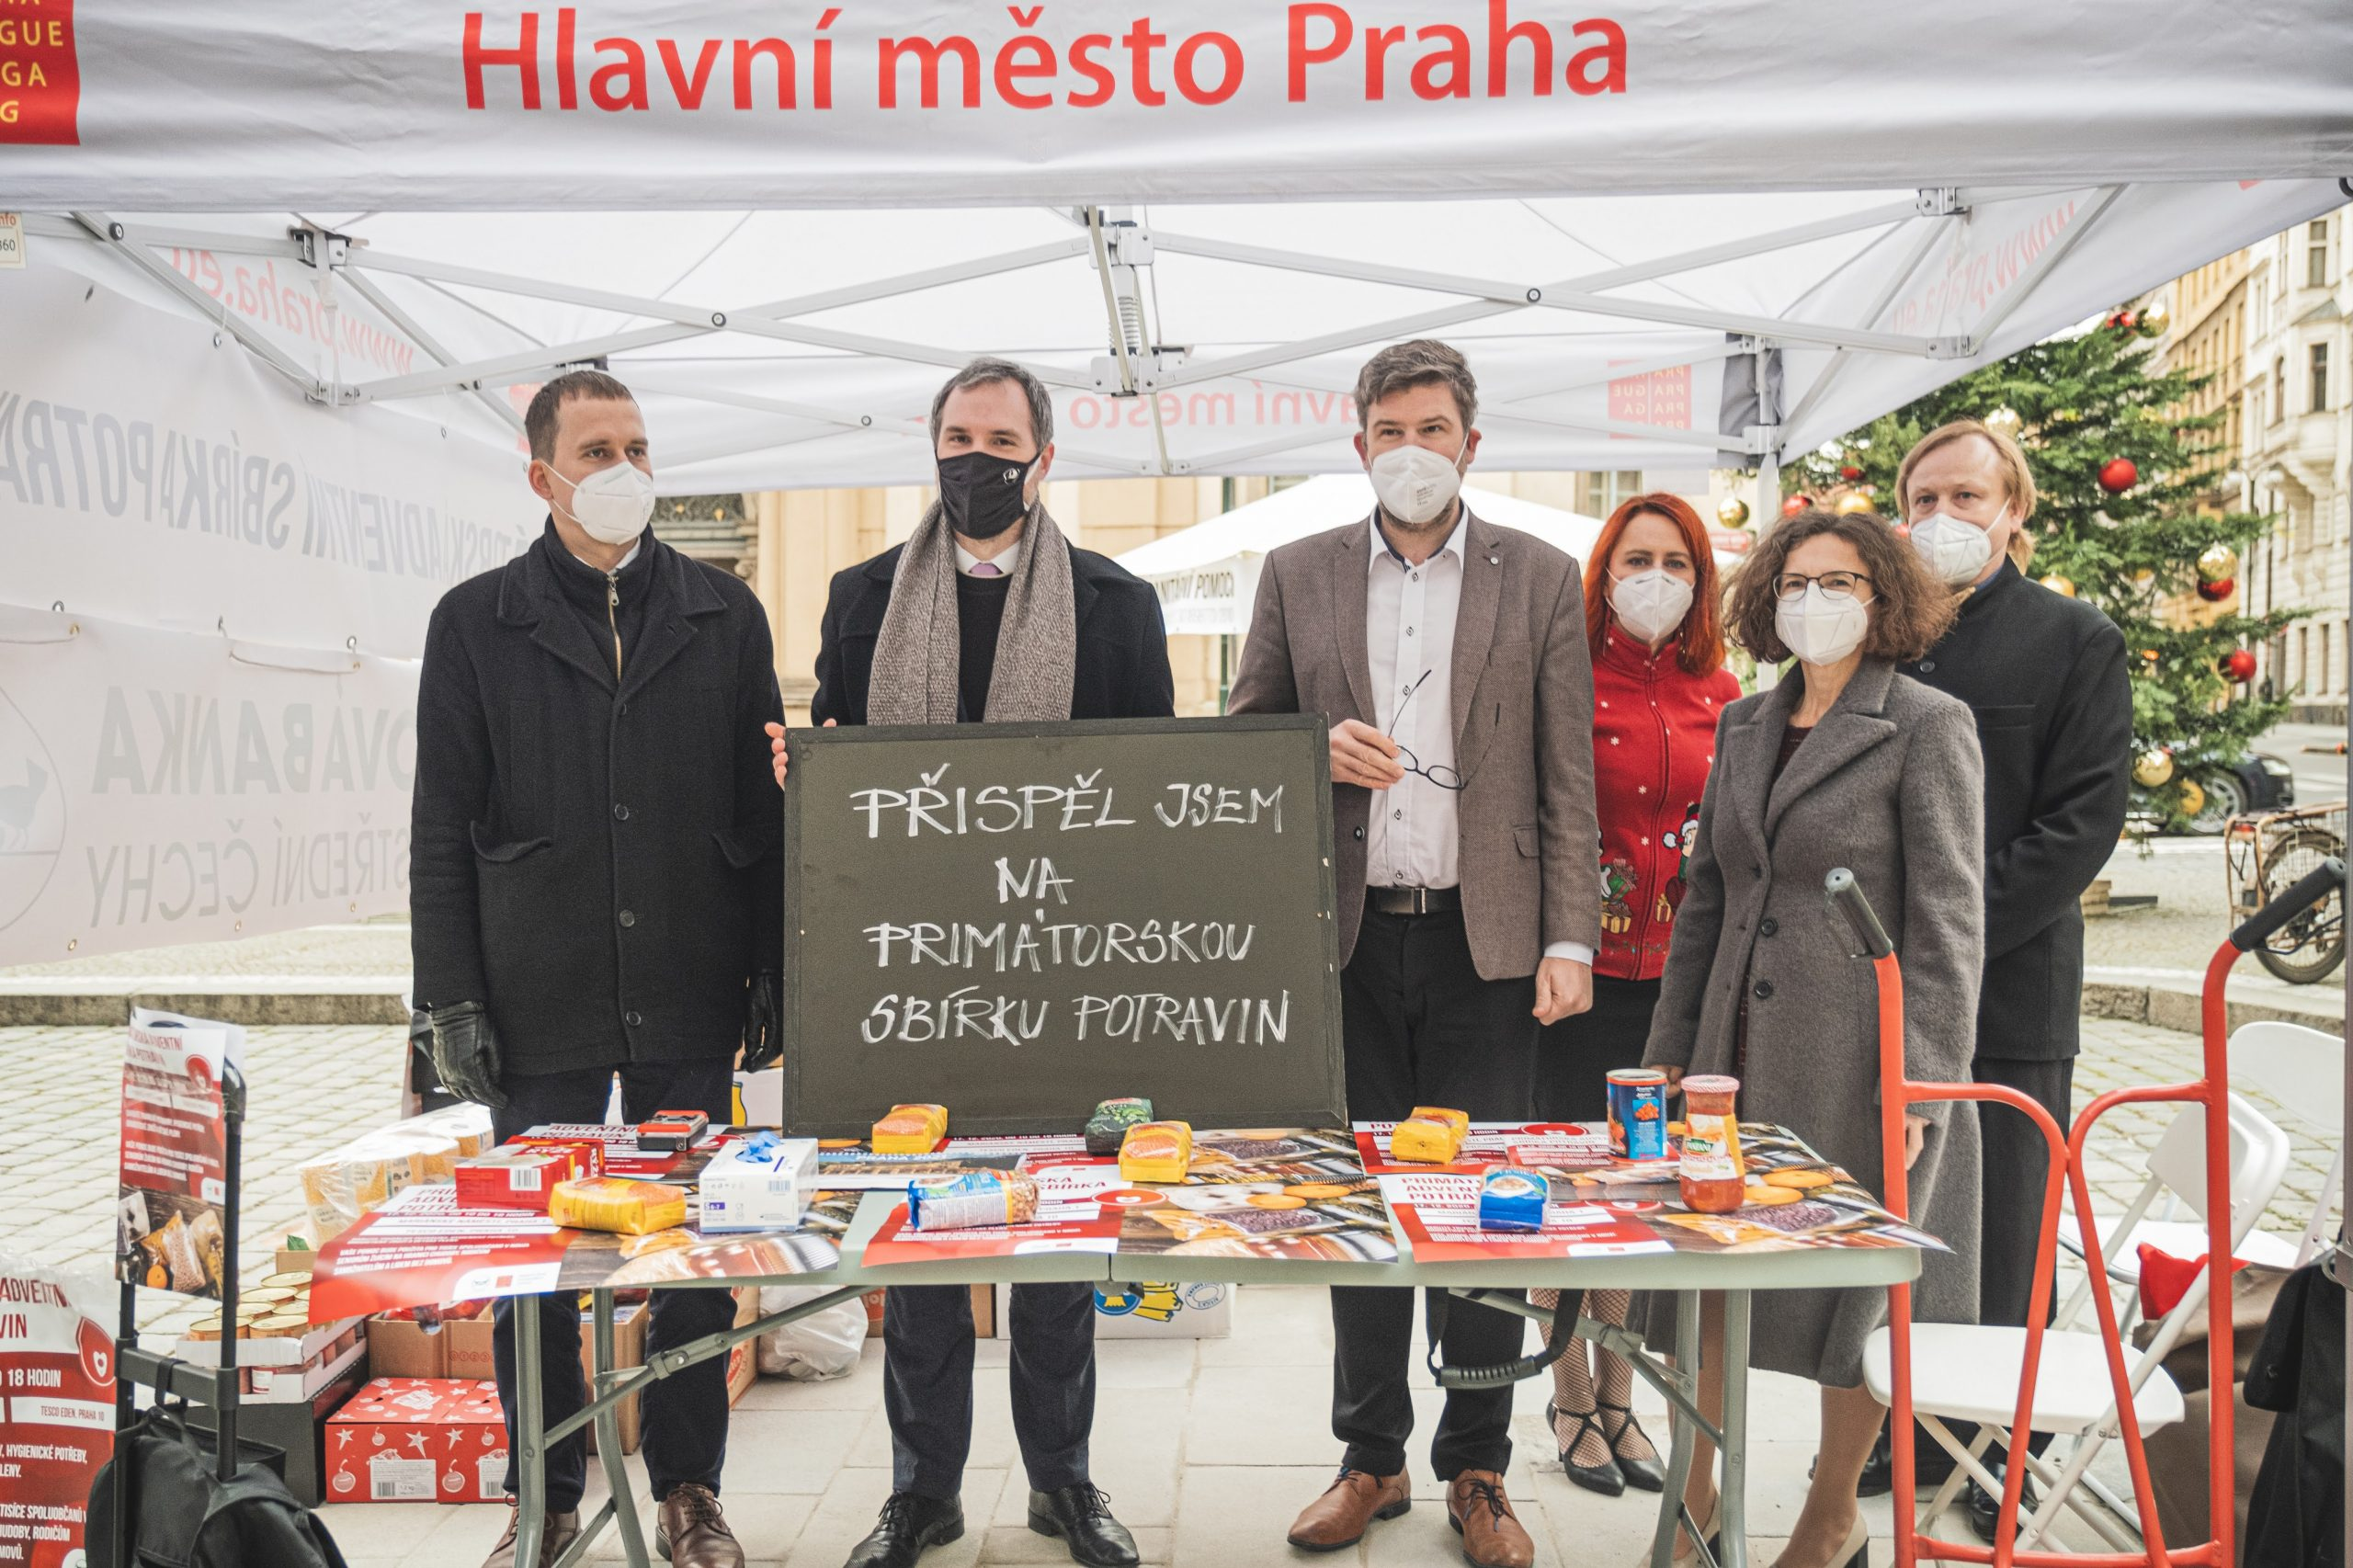 Prague officials at the The Mayor's food collection